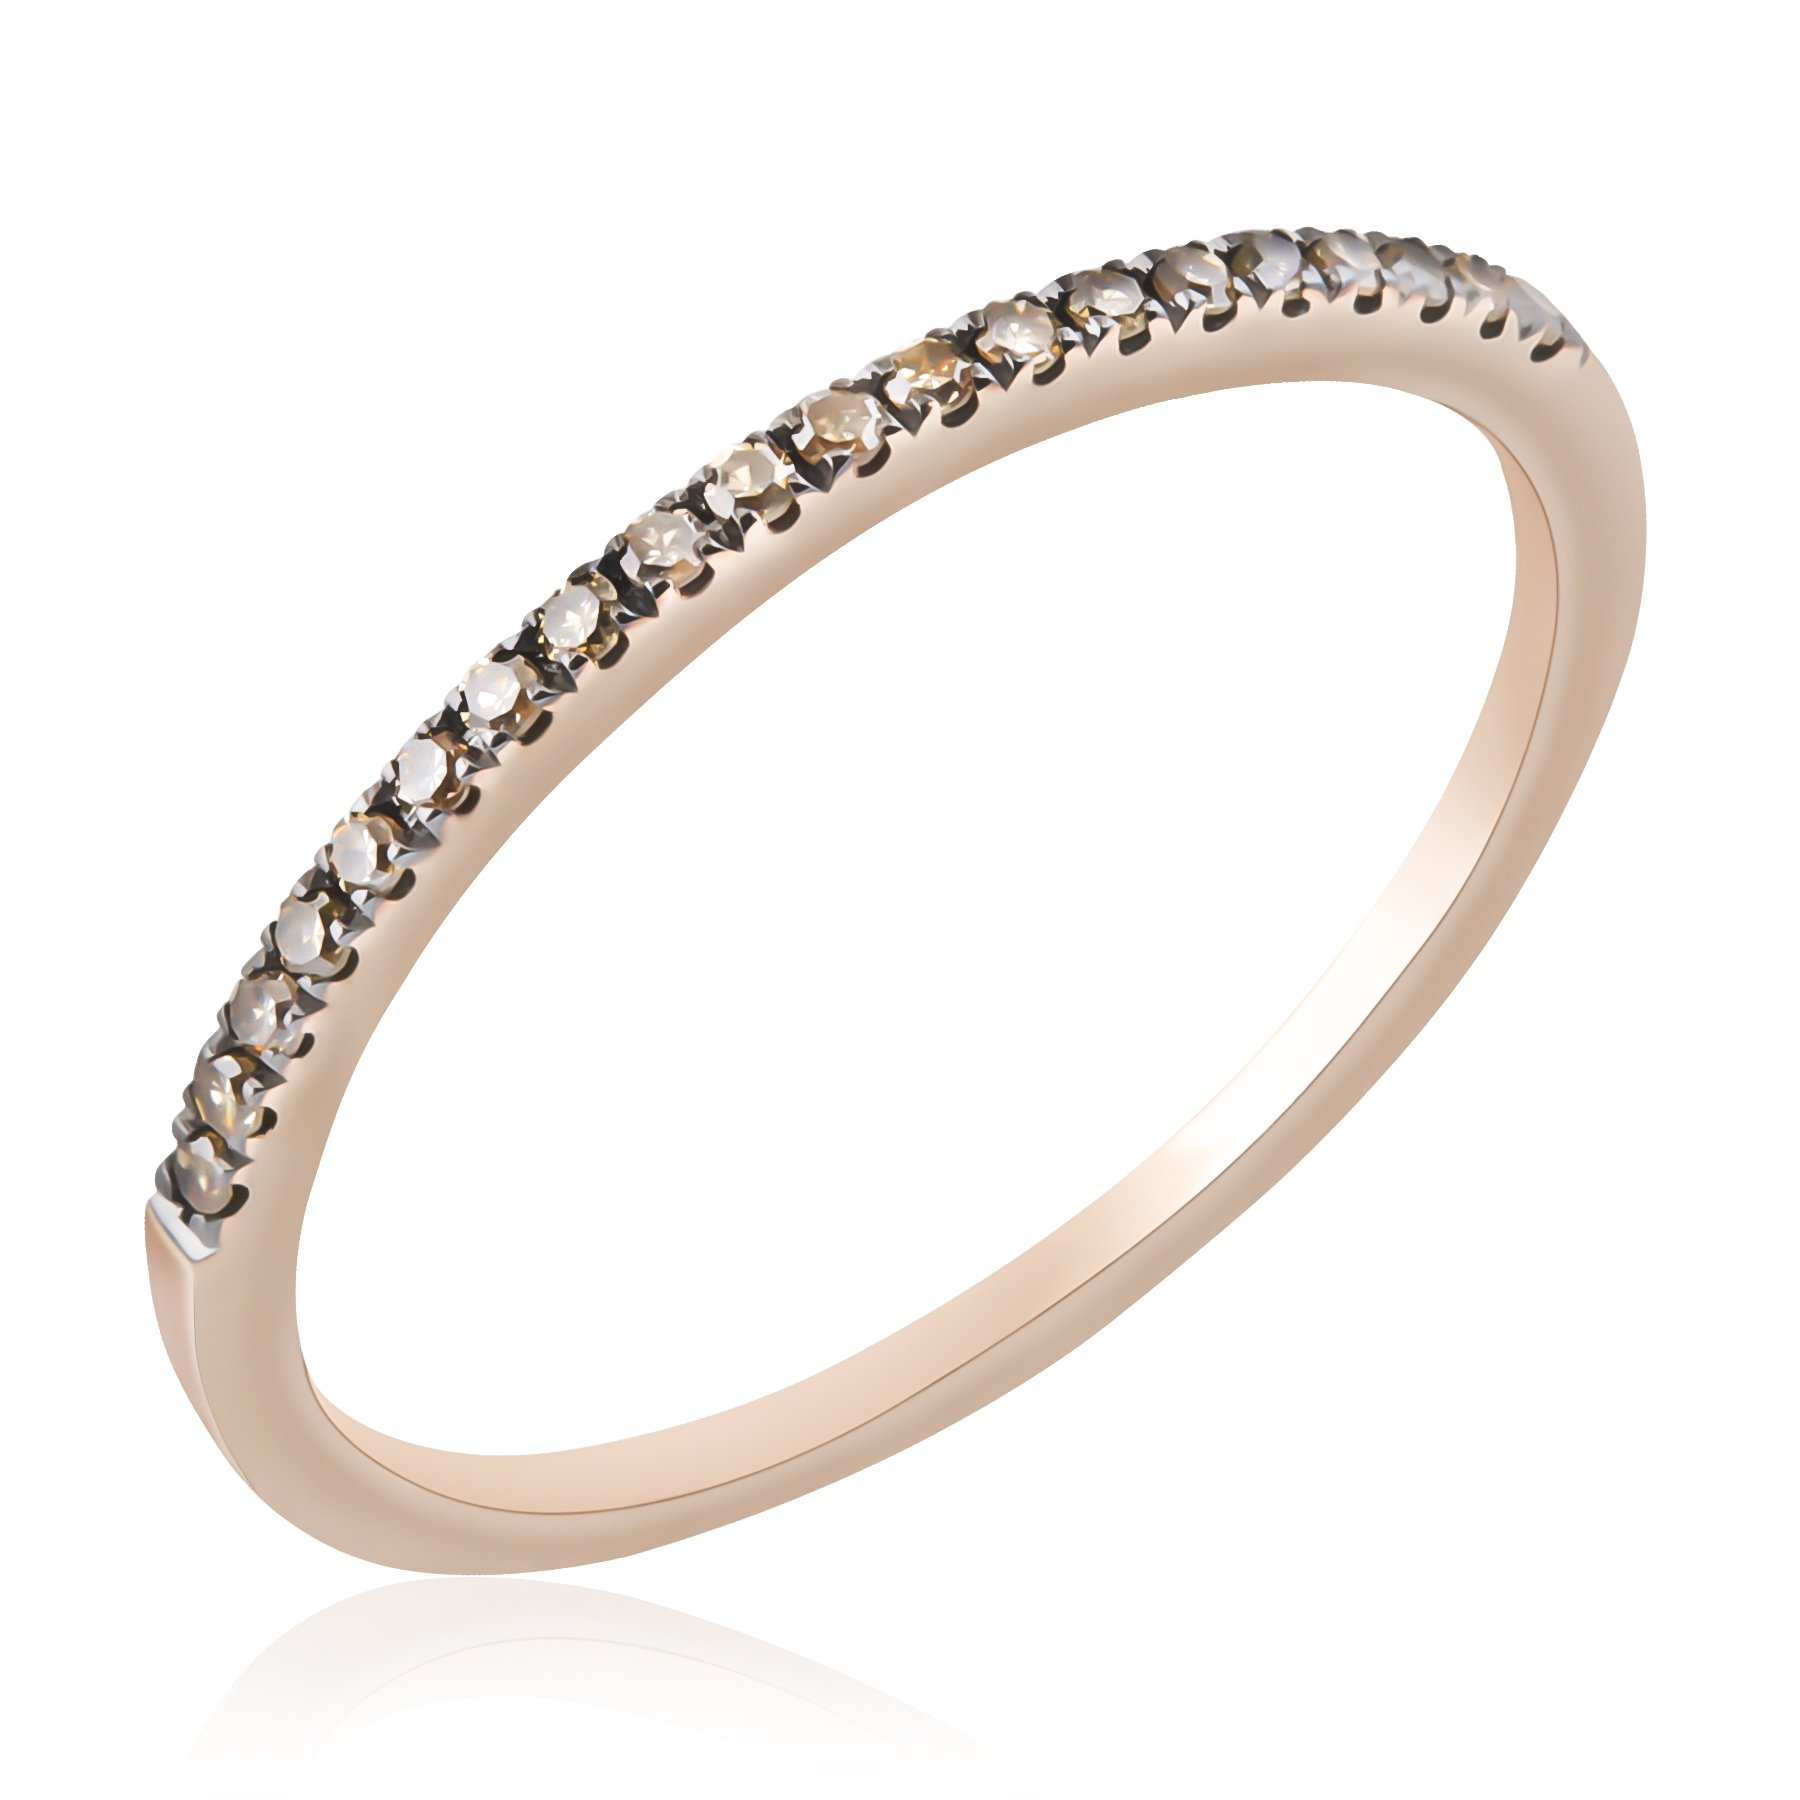 Prism Jewel Natural Brown Diamond Half Eternity Anniversary Ring, Rose Gold Plated Silver, Size 8.5